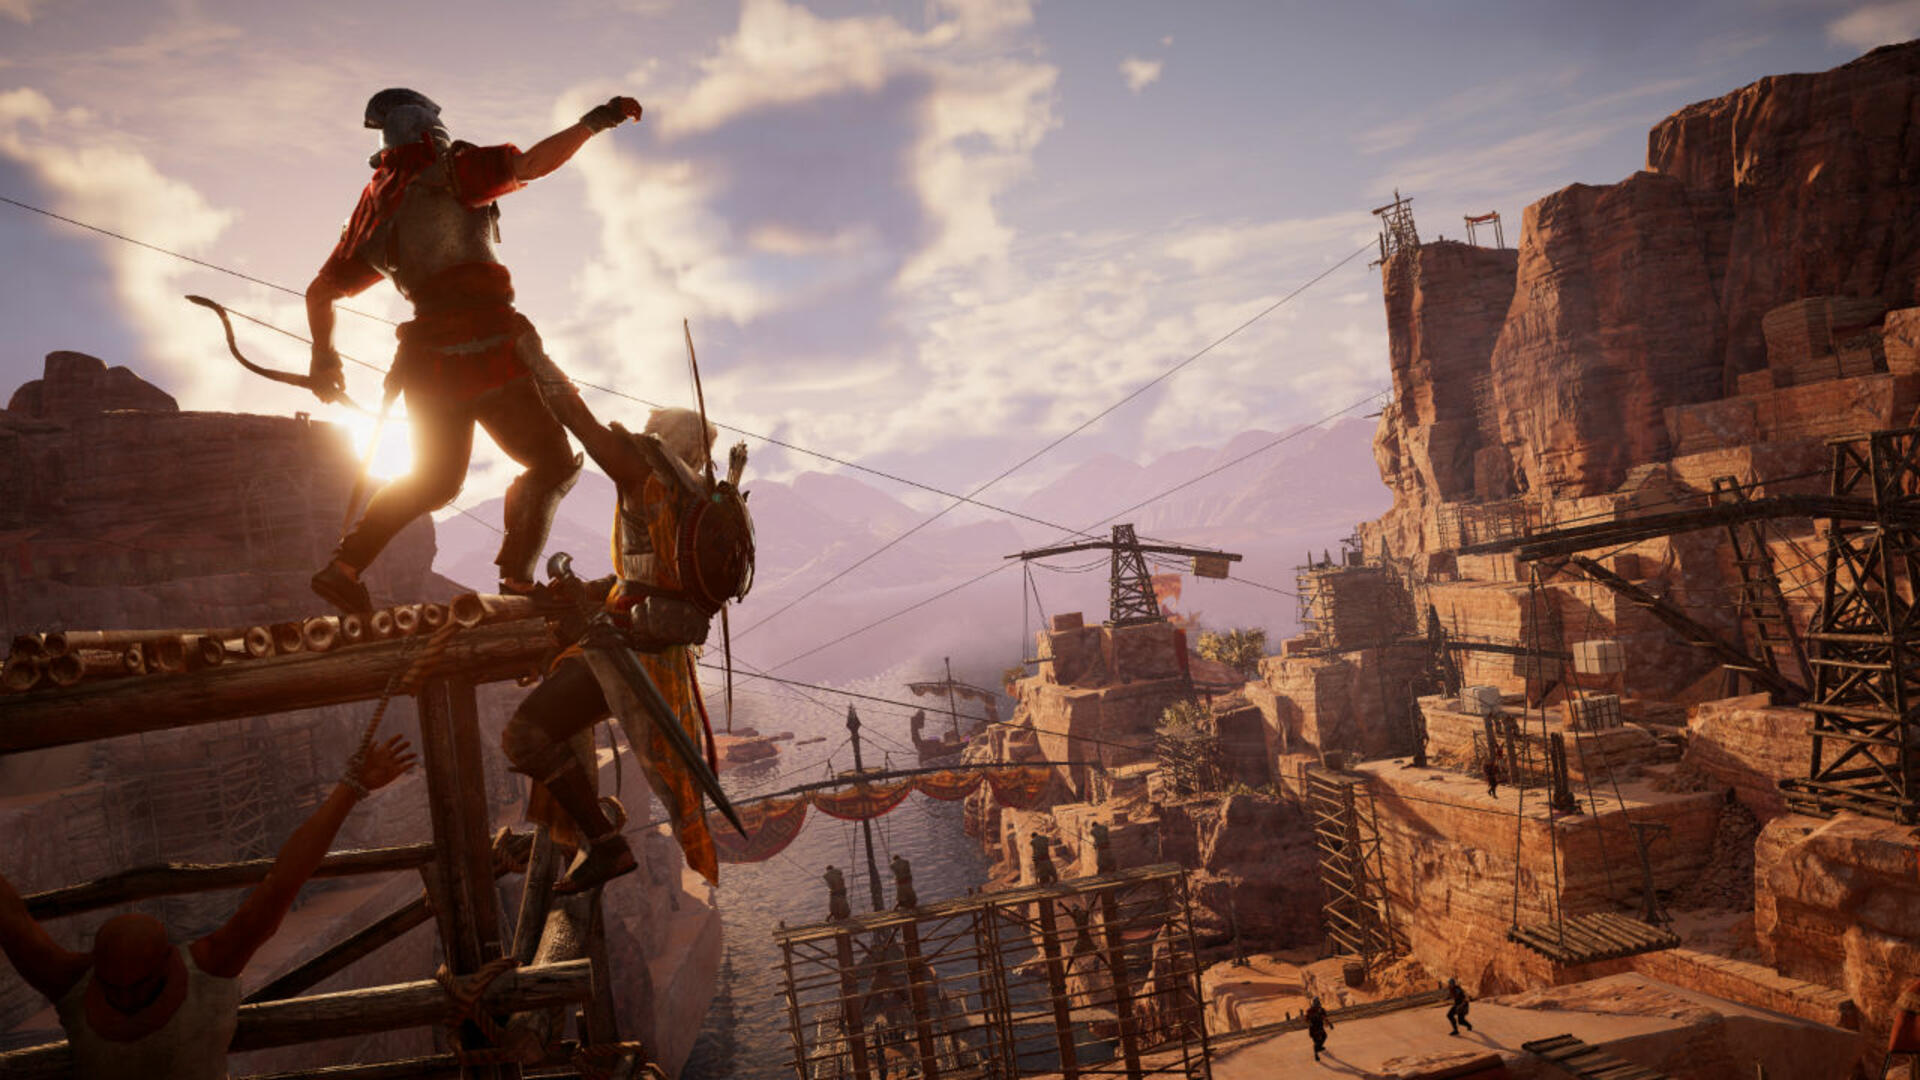 Assassin's Creed Origins Will Release Free Updates and the First Major Expansion in January